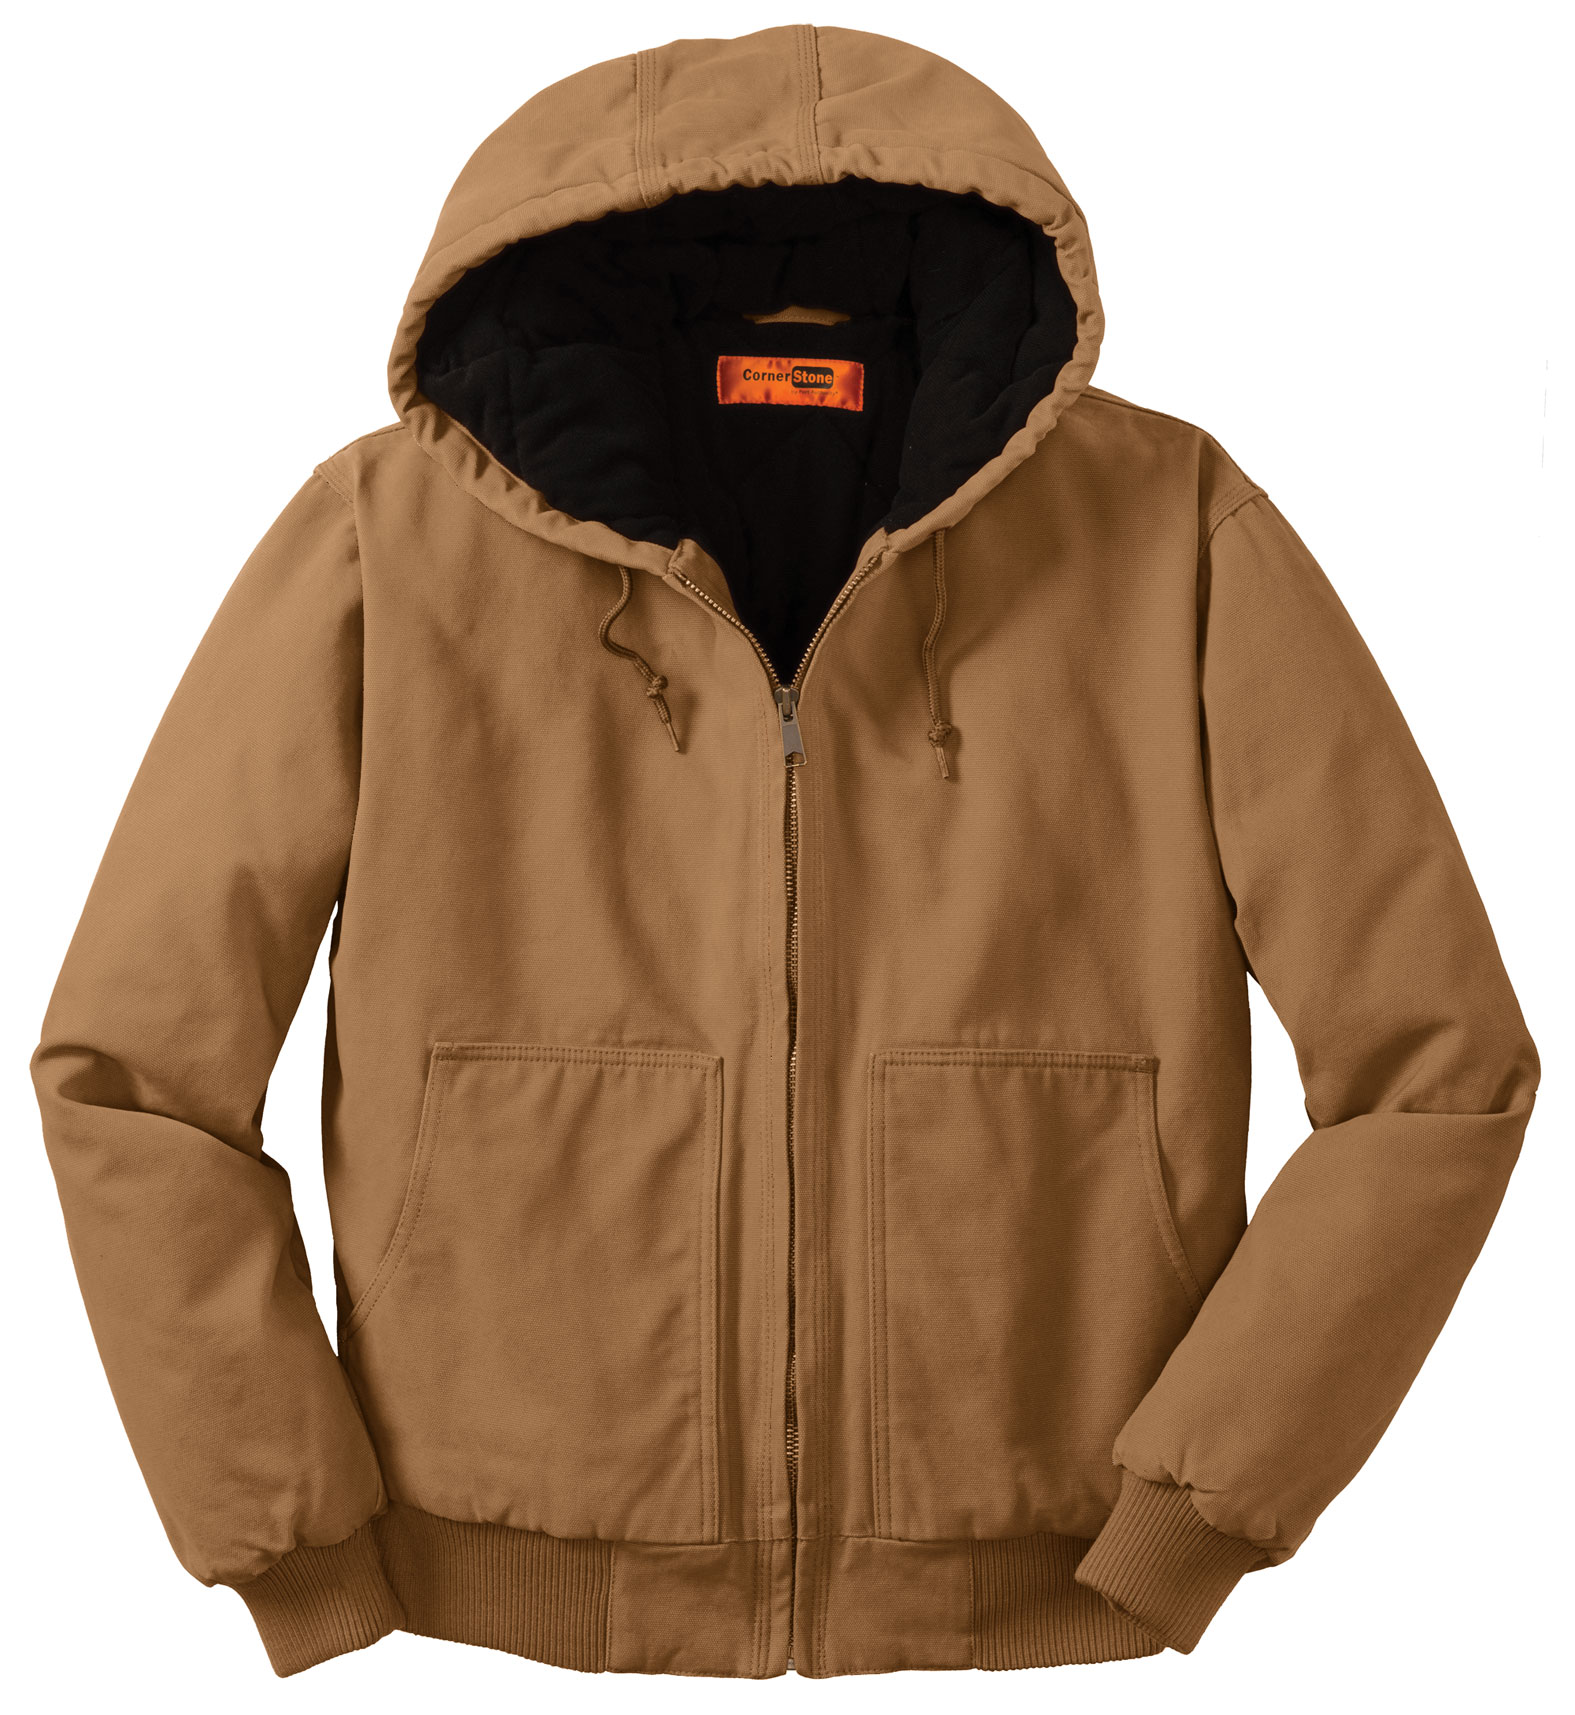 CornerStone�� Washed Duck Cloth Hooded Work Jacket